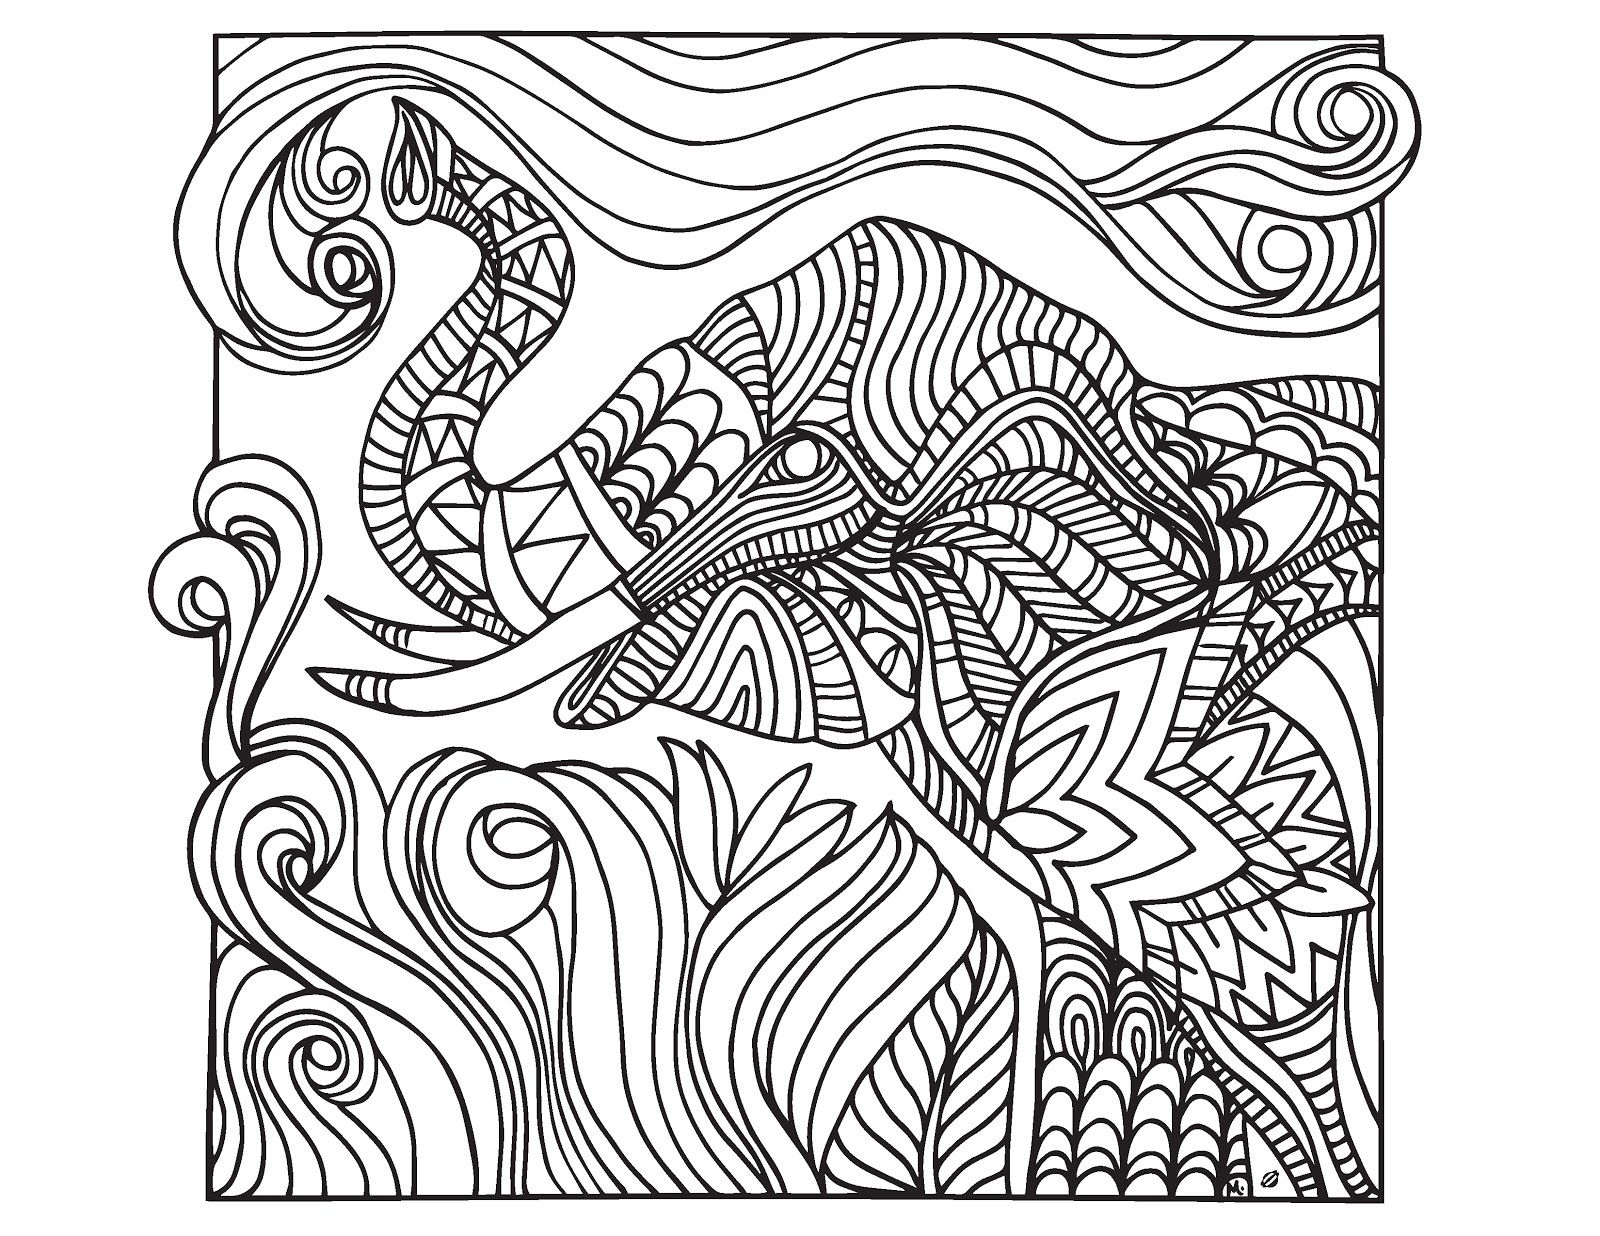 1600x1236 Relaxing Coloring Pages Luxury Relaxation Coloring Pages Az